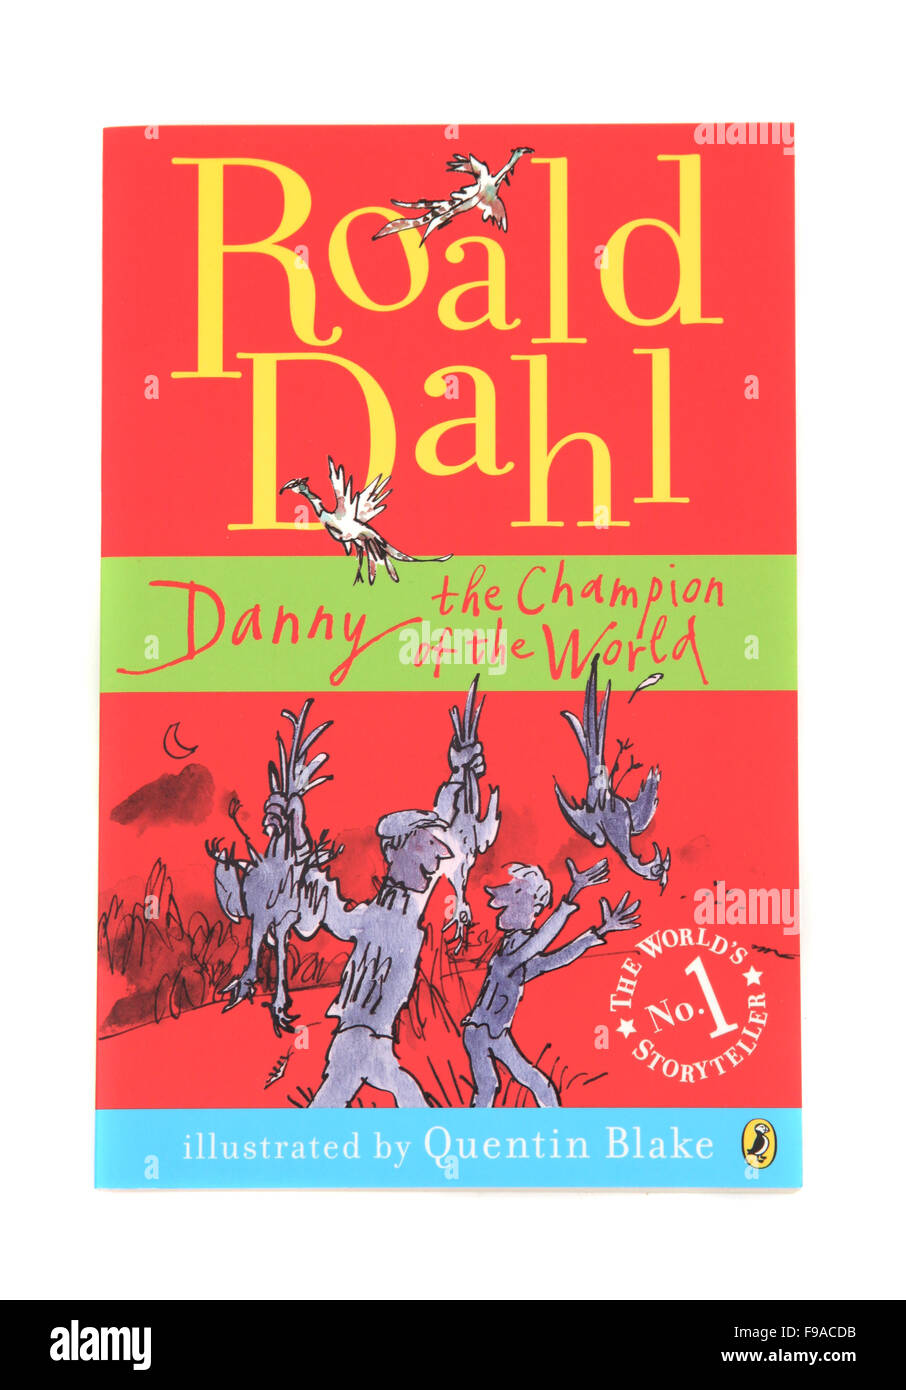 Danny the Champion of the World, a children's book by Roald Dahl - Stock Image